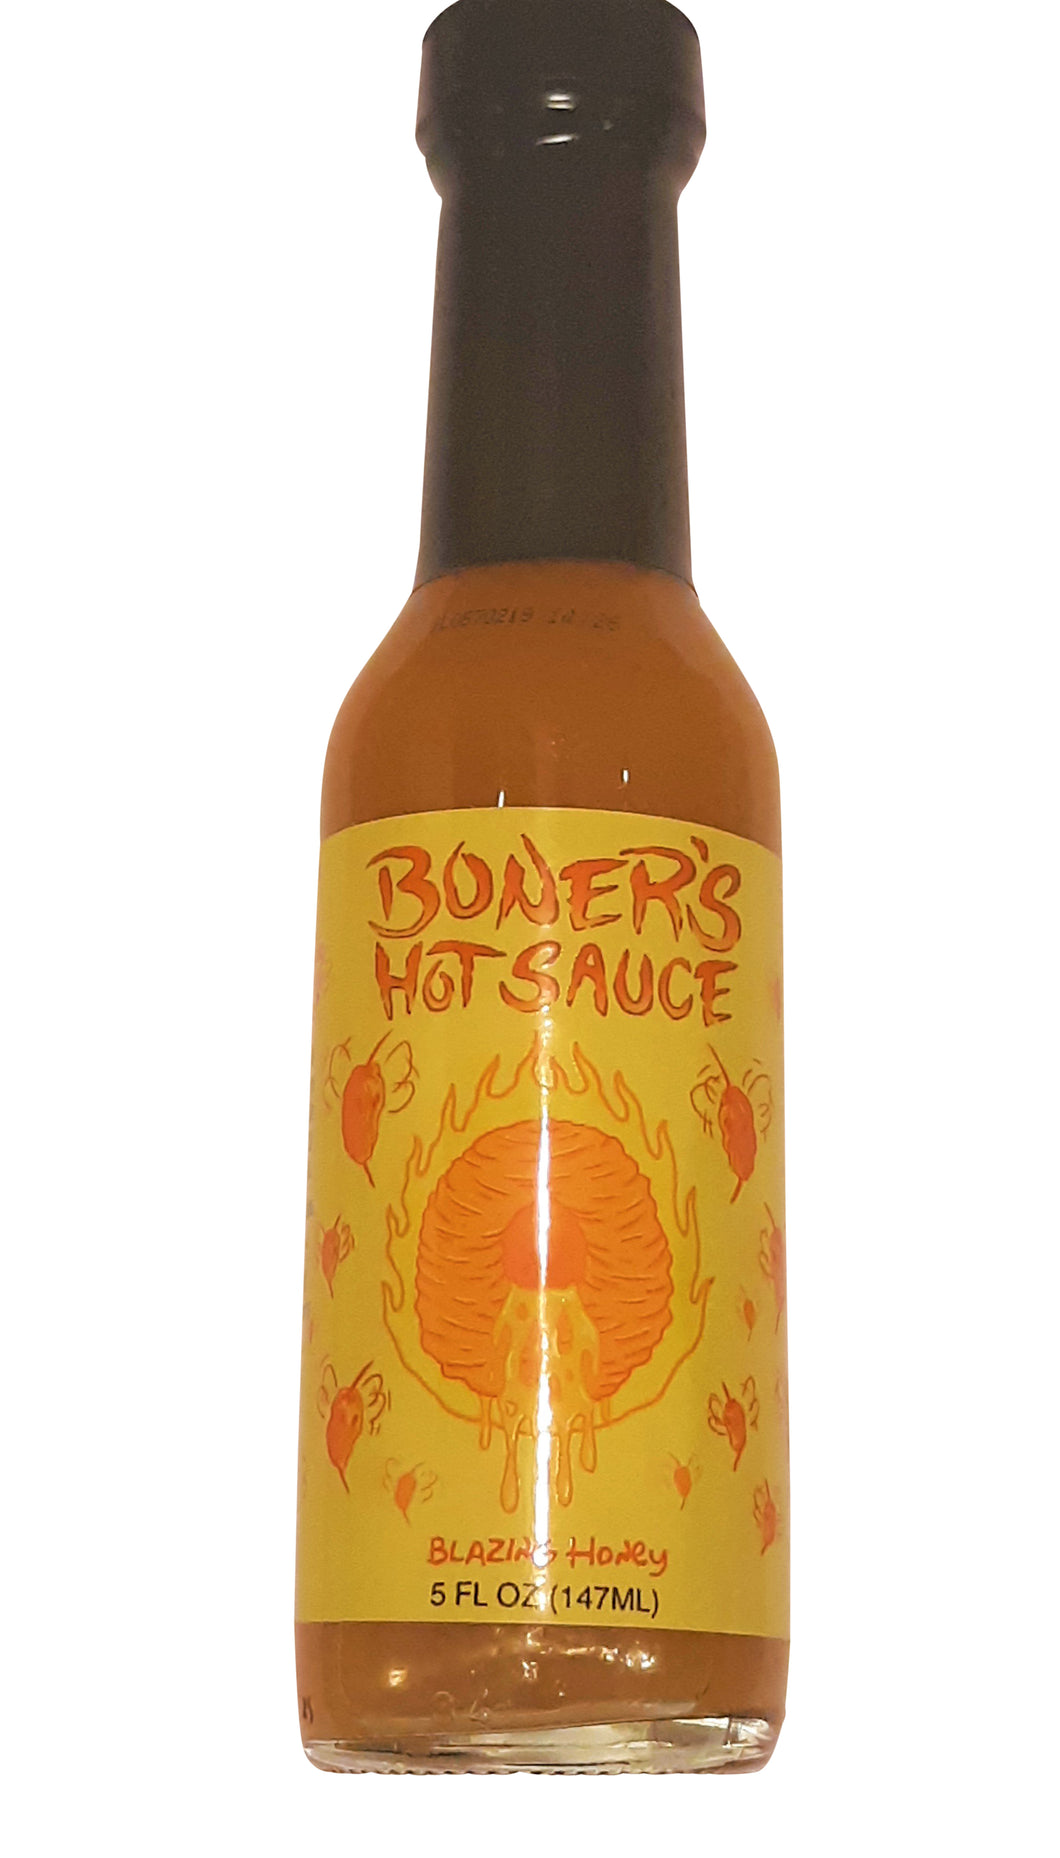 Boner's Blazing Honey: Habanero Hot Sauce